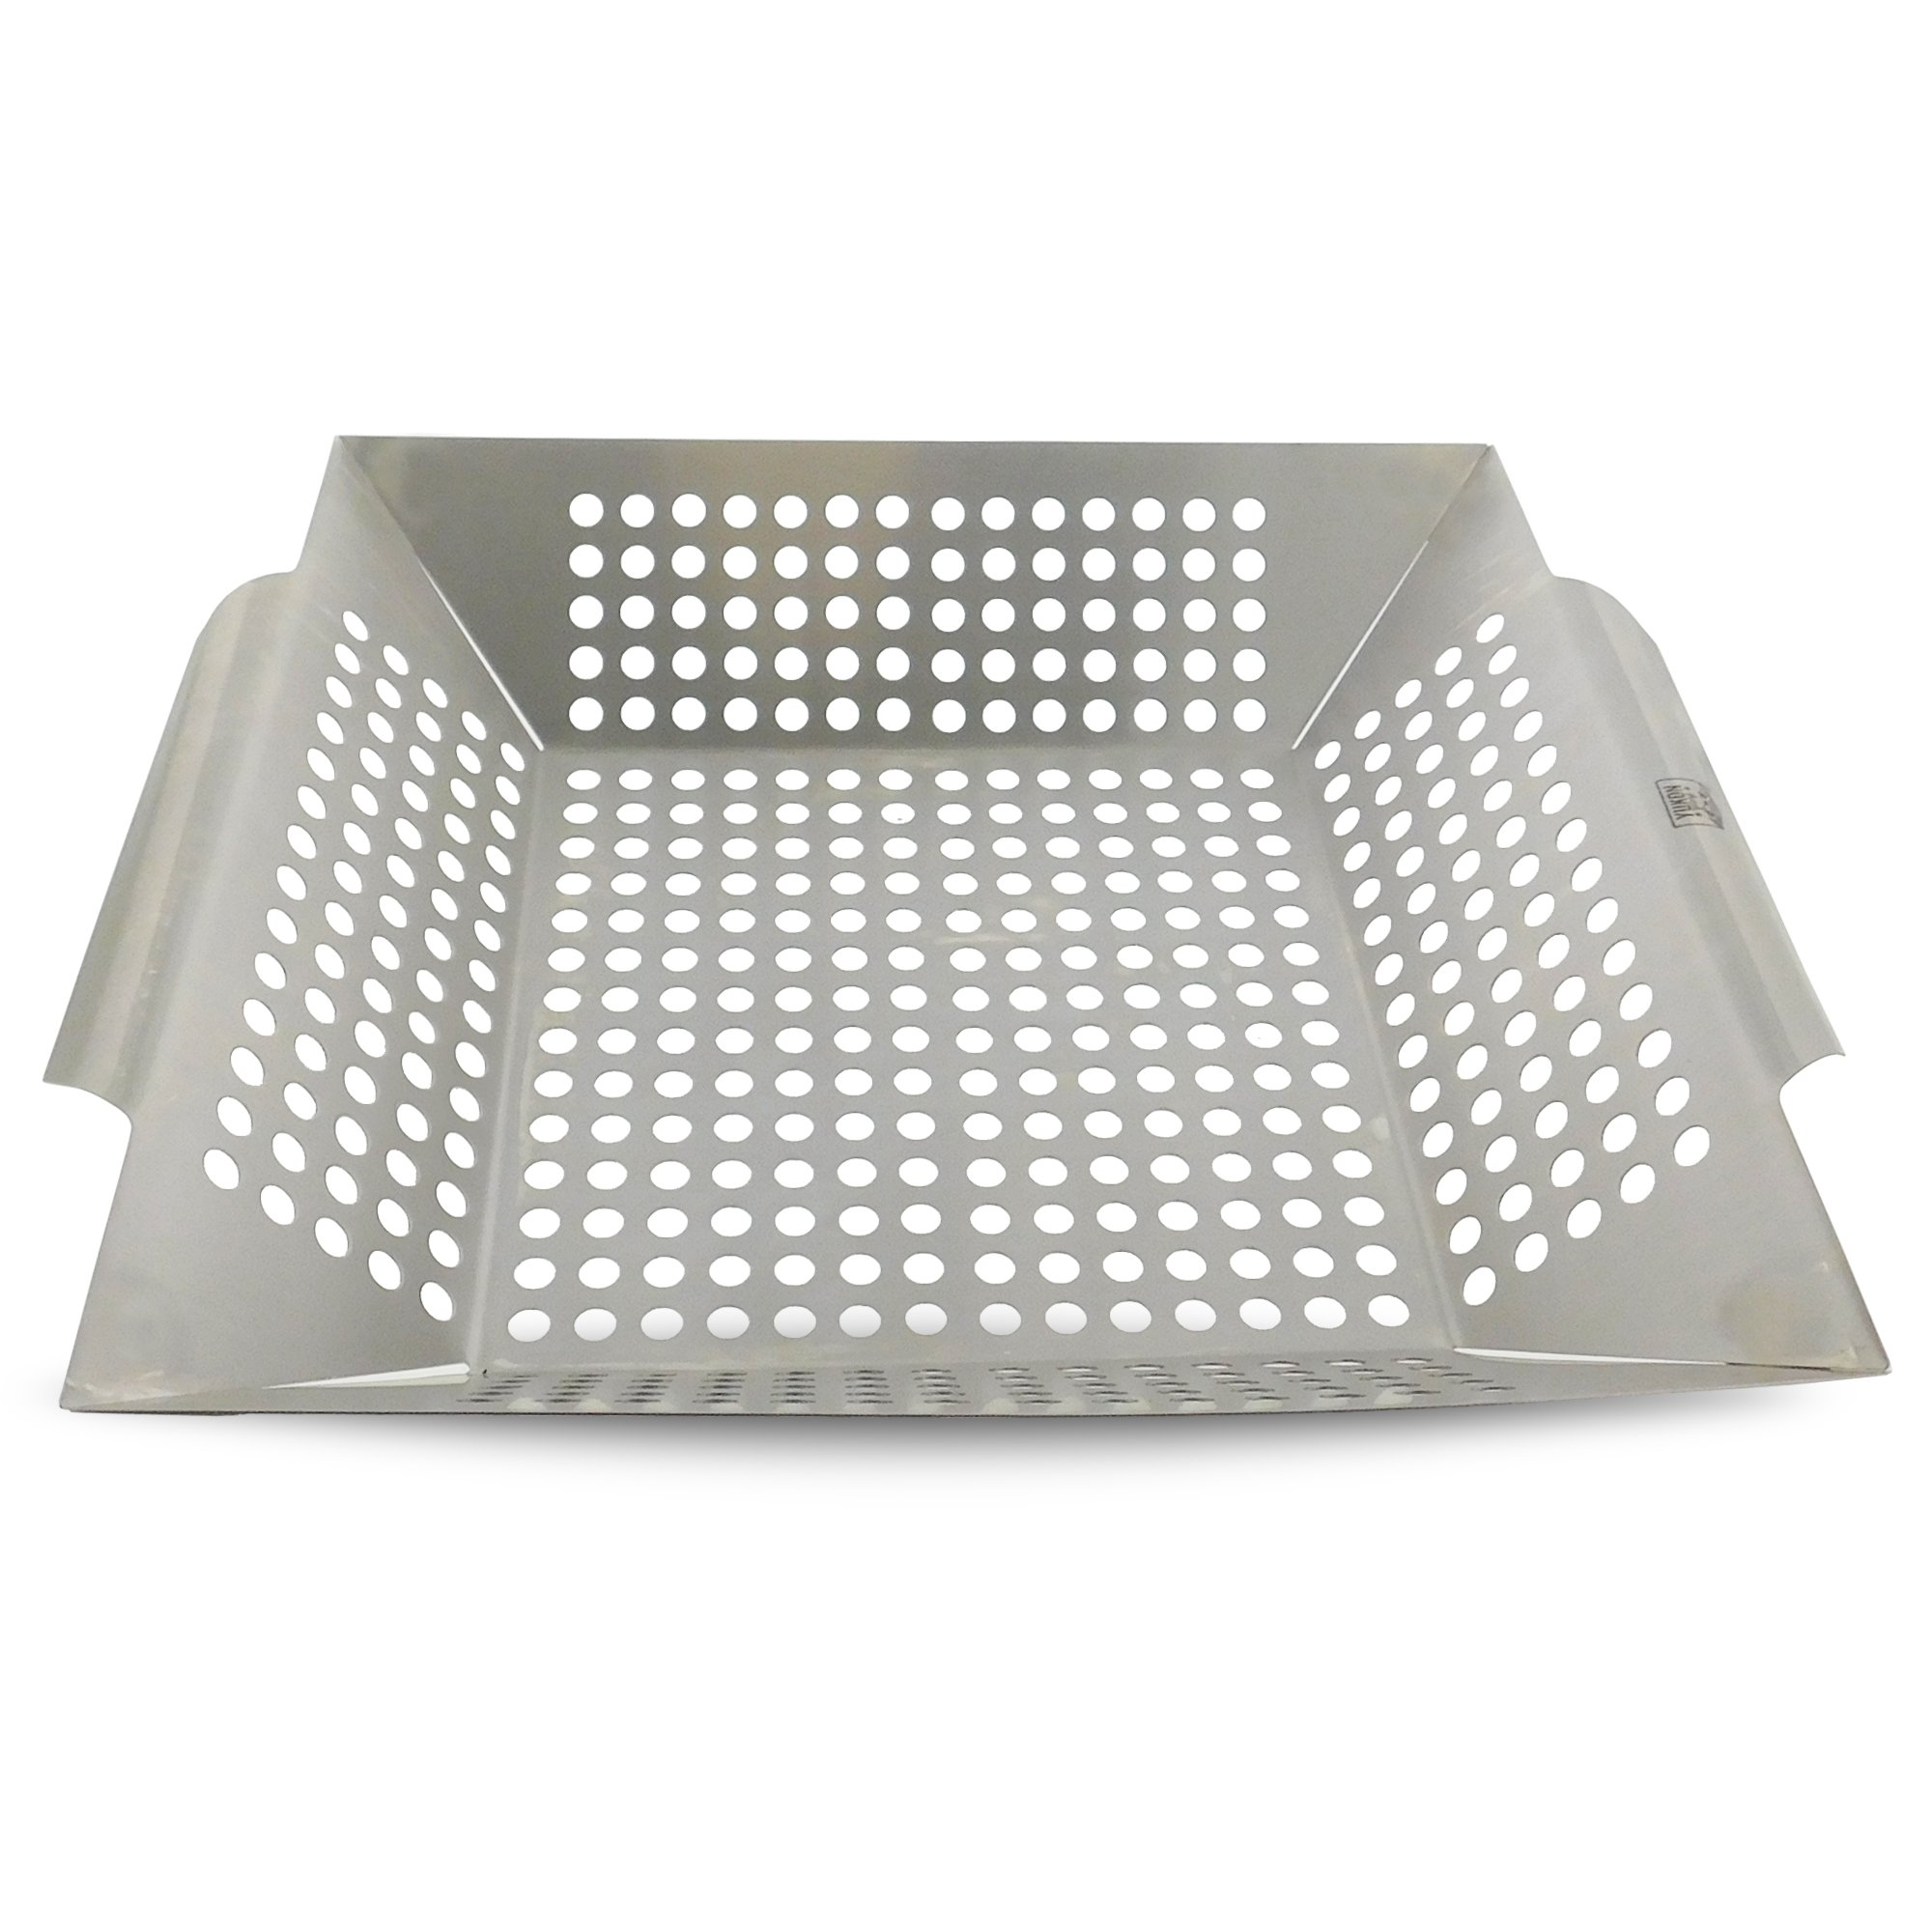 Yukon Glory GM-718 Professional Grill Basket for Grilling Veggies Fish & More Premium Stainless steel